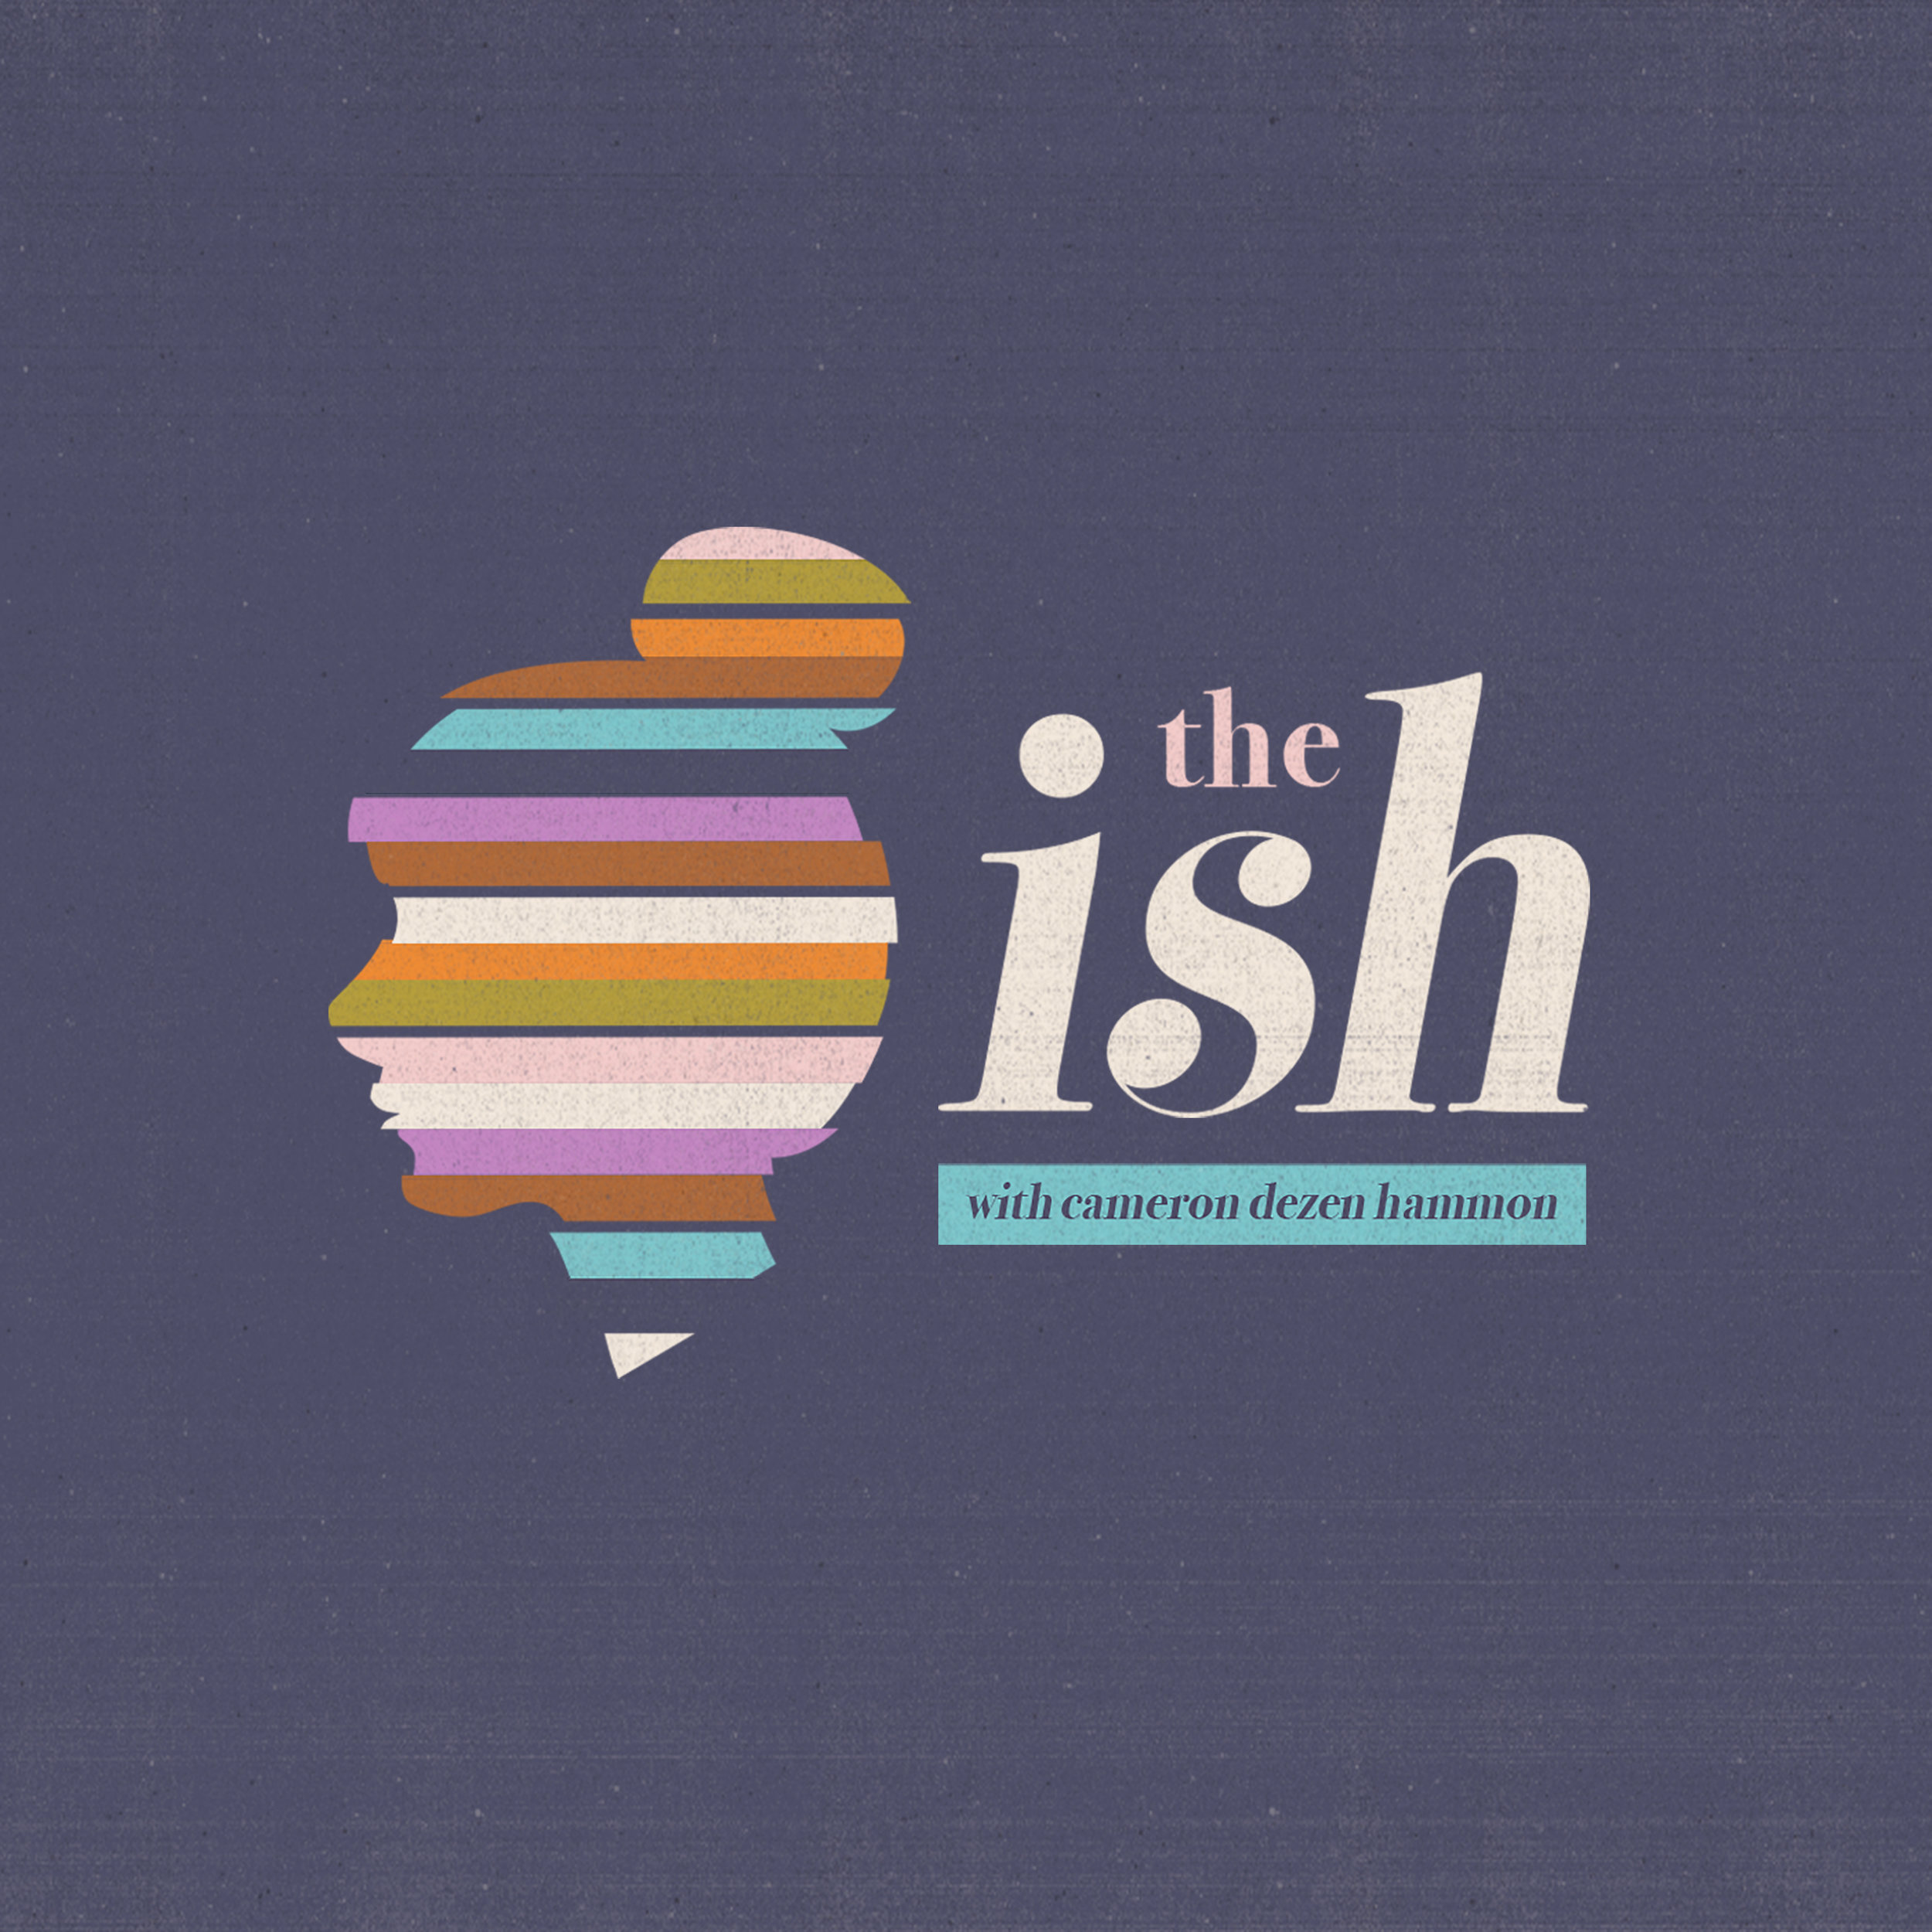 The Ish - A podcast from the liminal spaces of life, love, art, religion, and politics, hosted by Cameron Dezen Hammon.Hear the latest episode below!